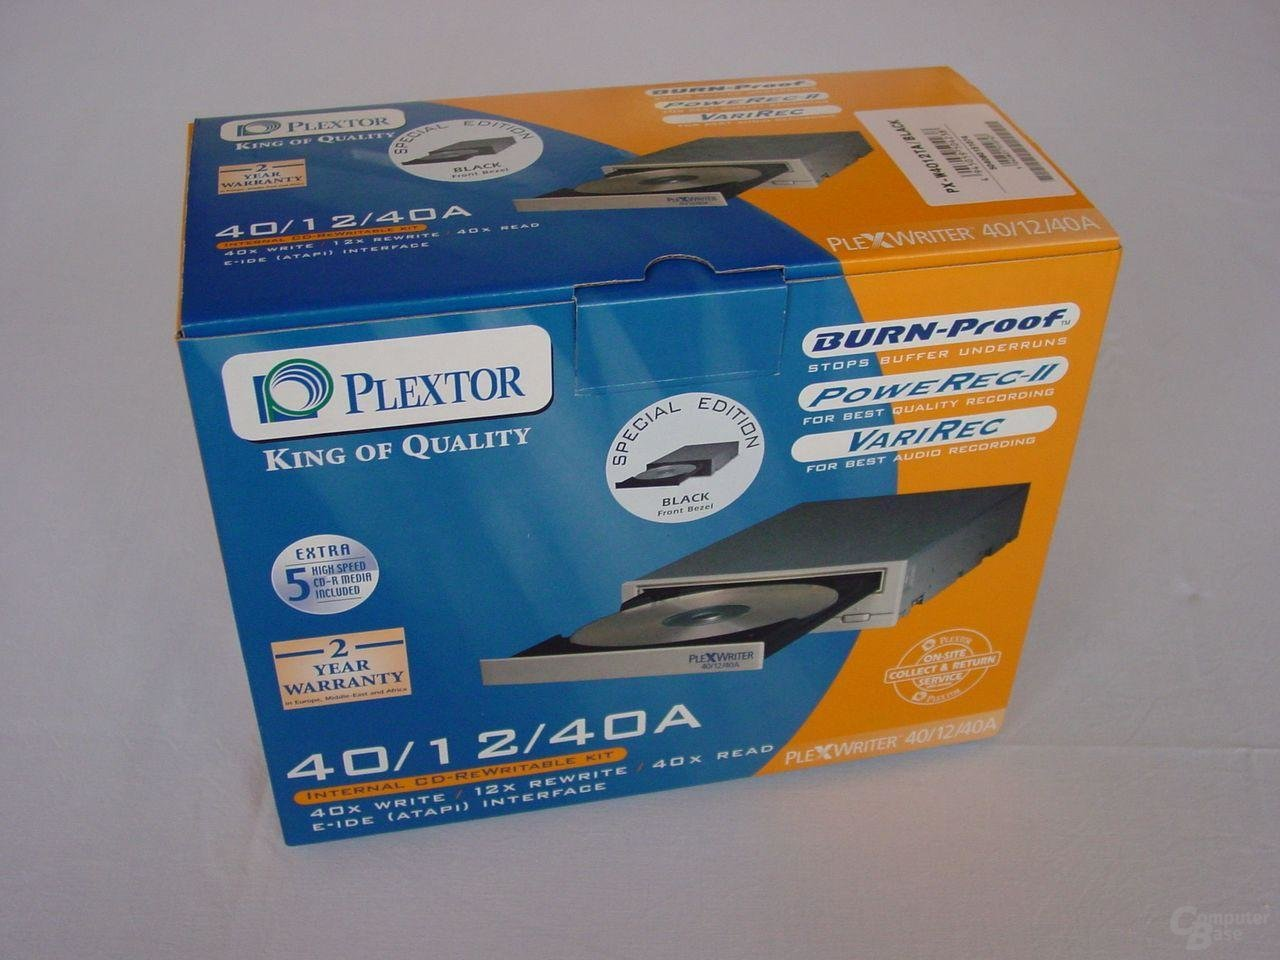 Verpackung PX-4012TA